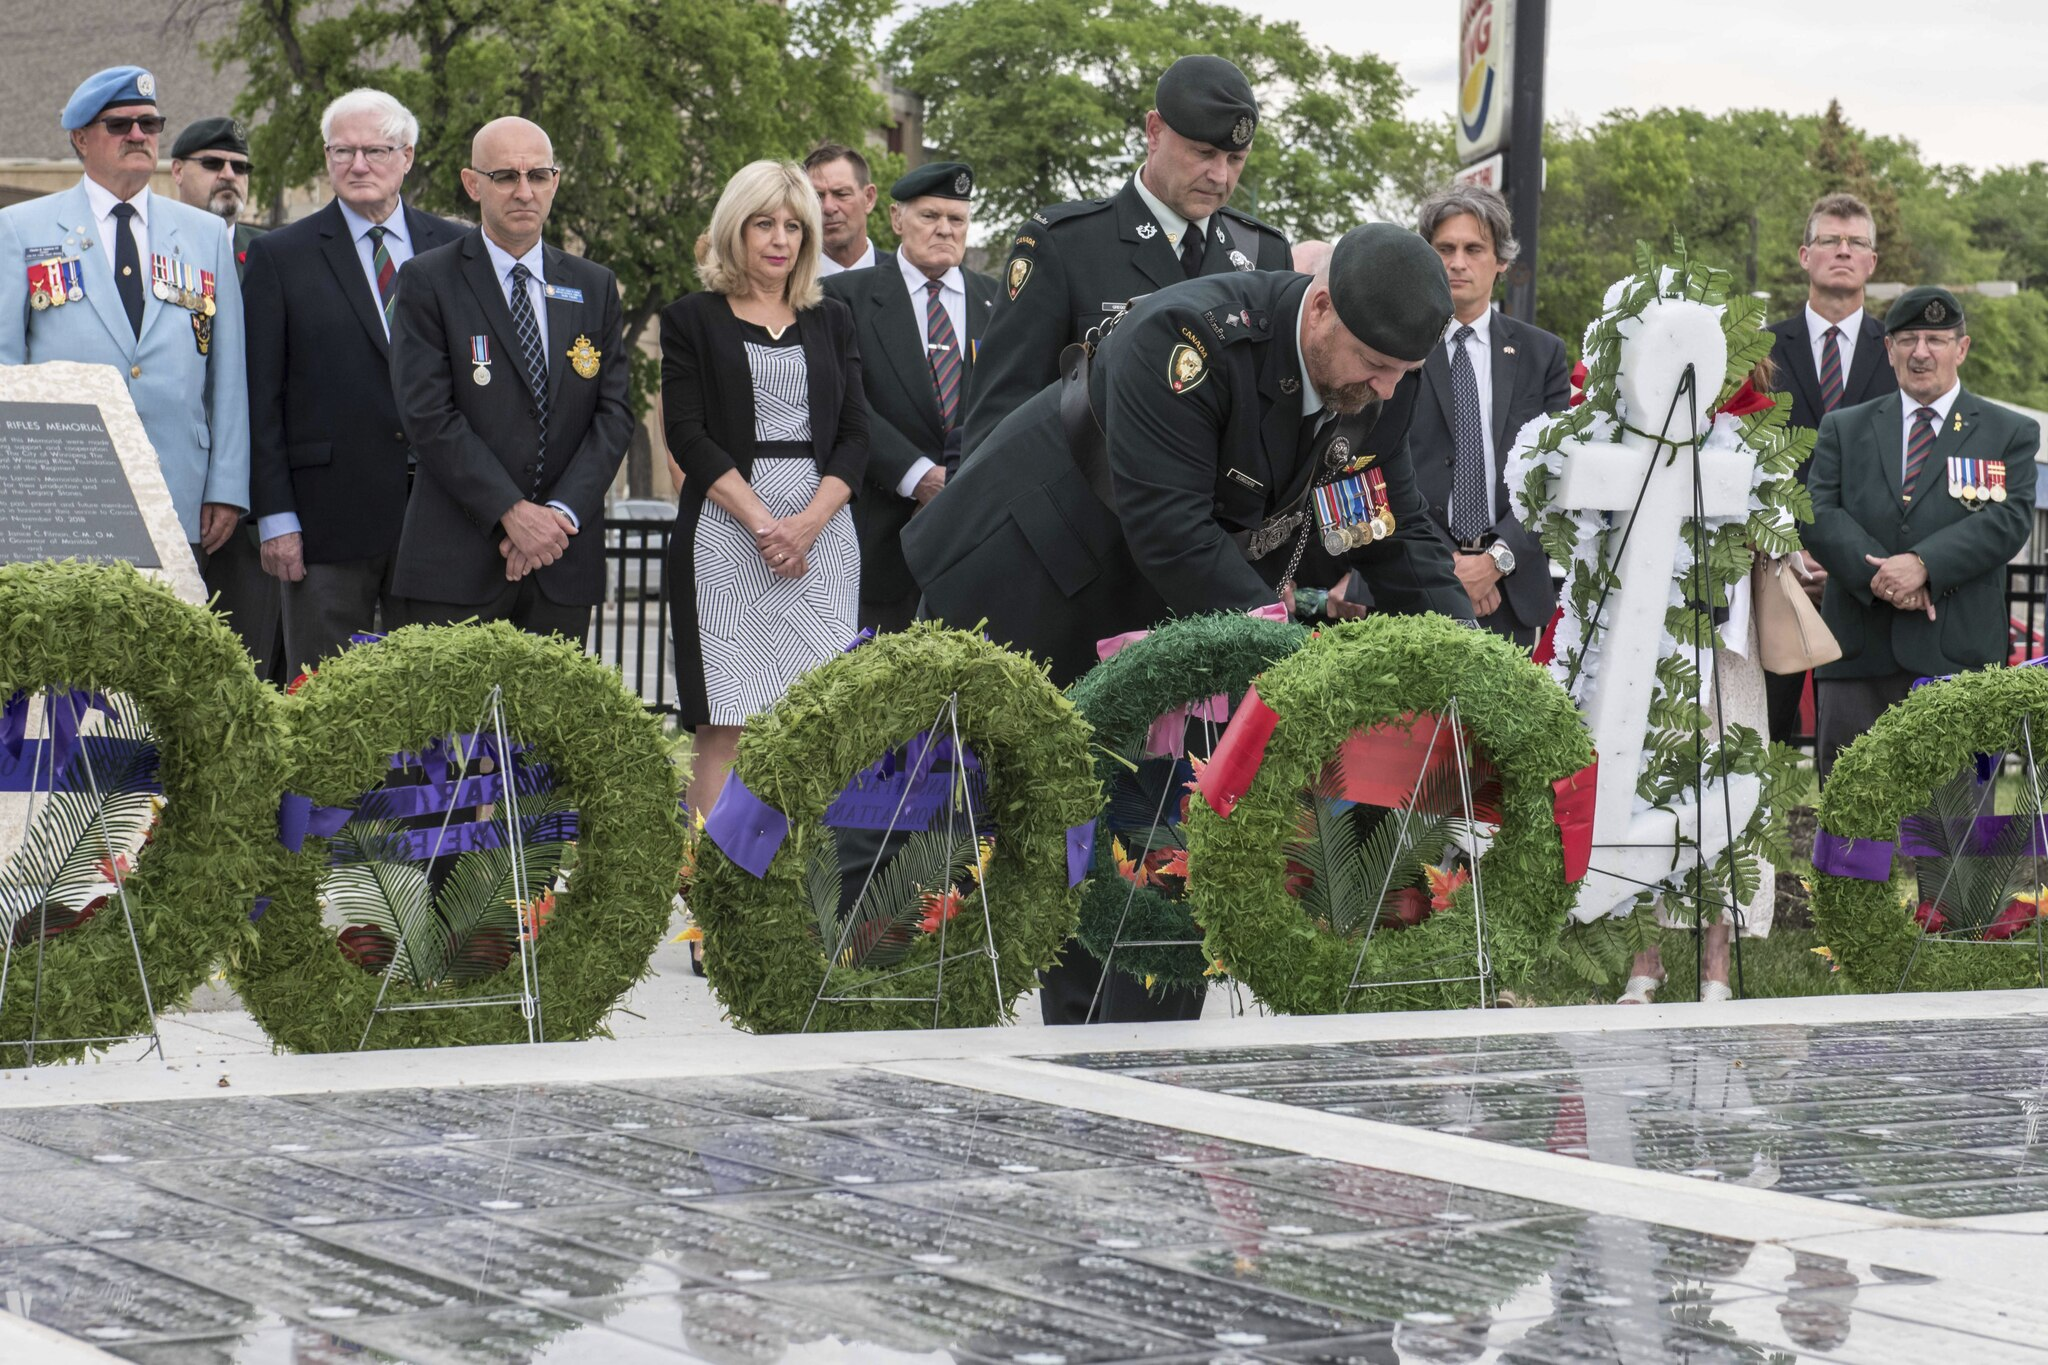 LCol Desrochers, Commanding Officer of the Rifles, laying a wreath; MWO Gregoire in the background.